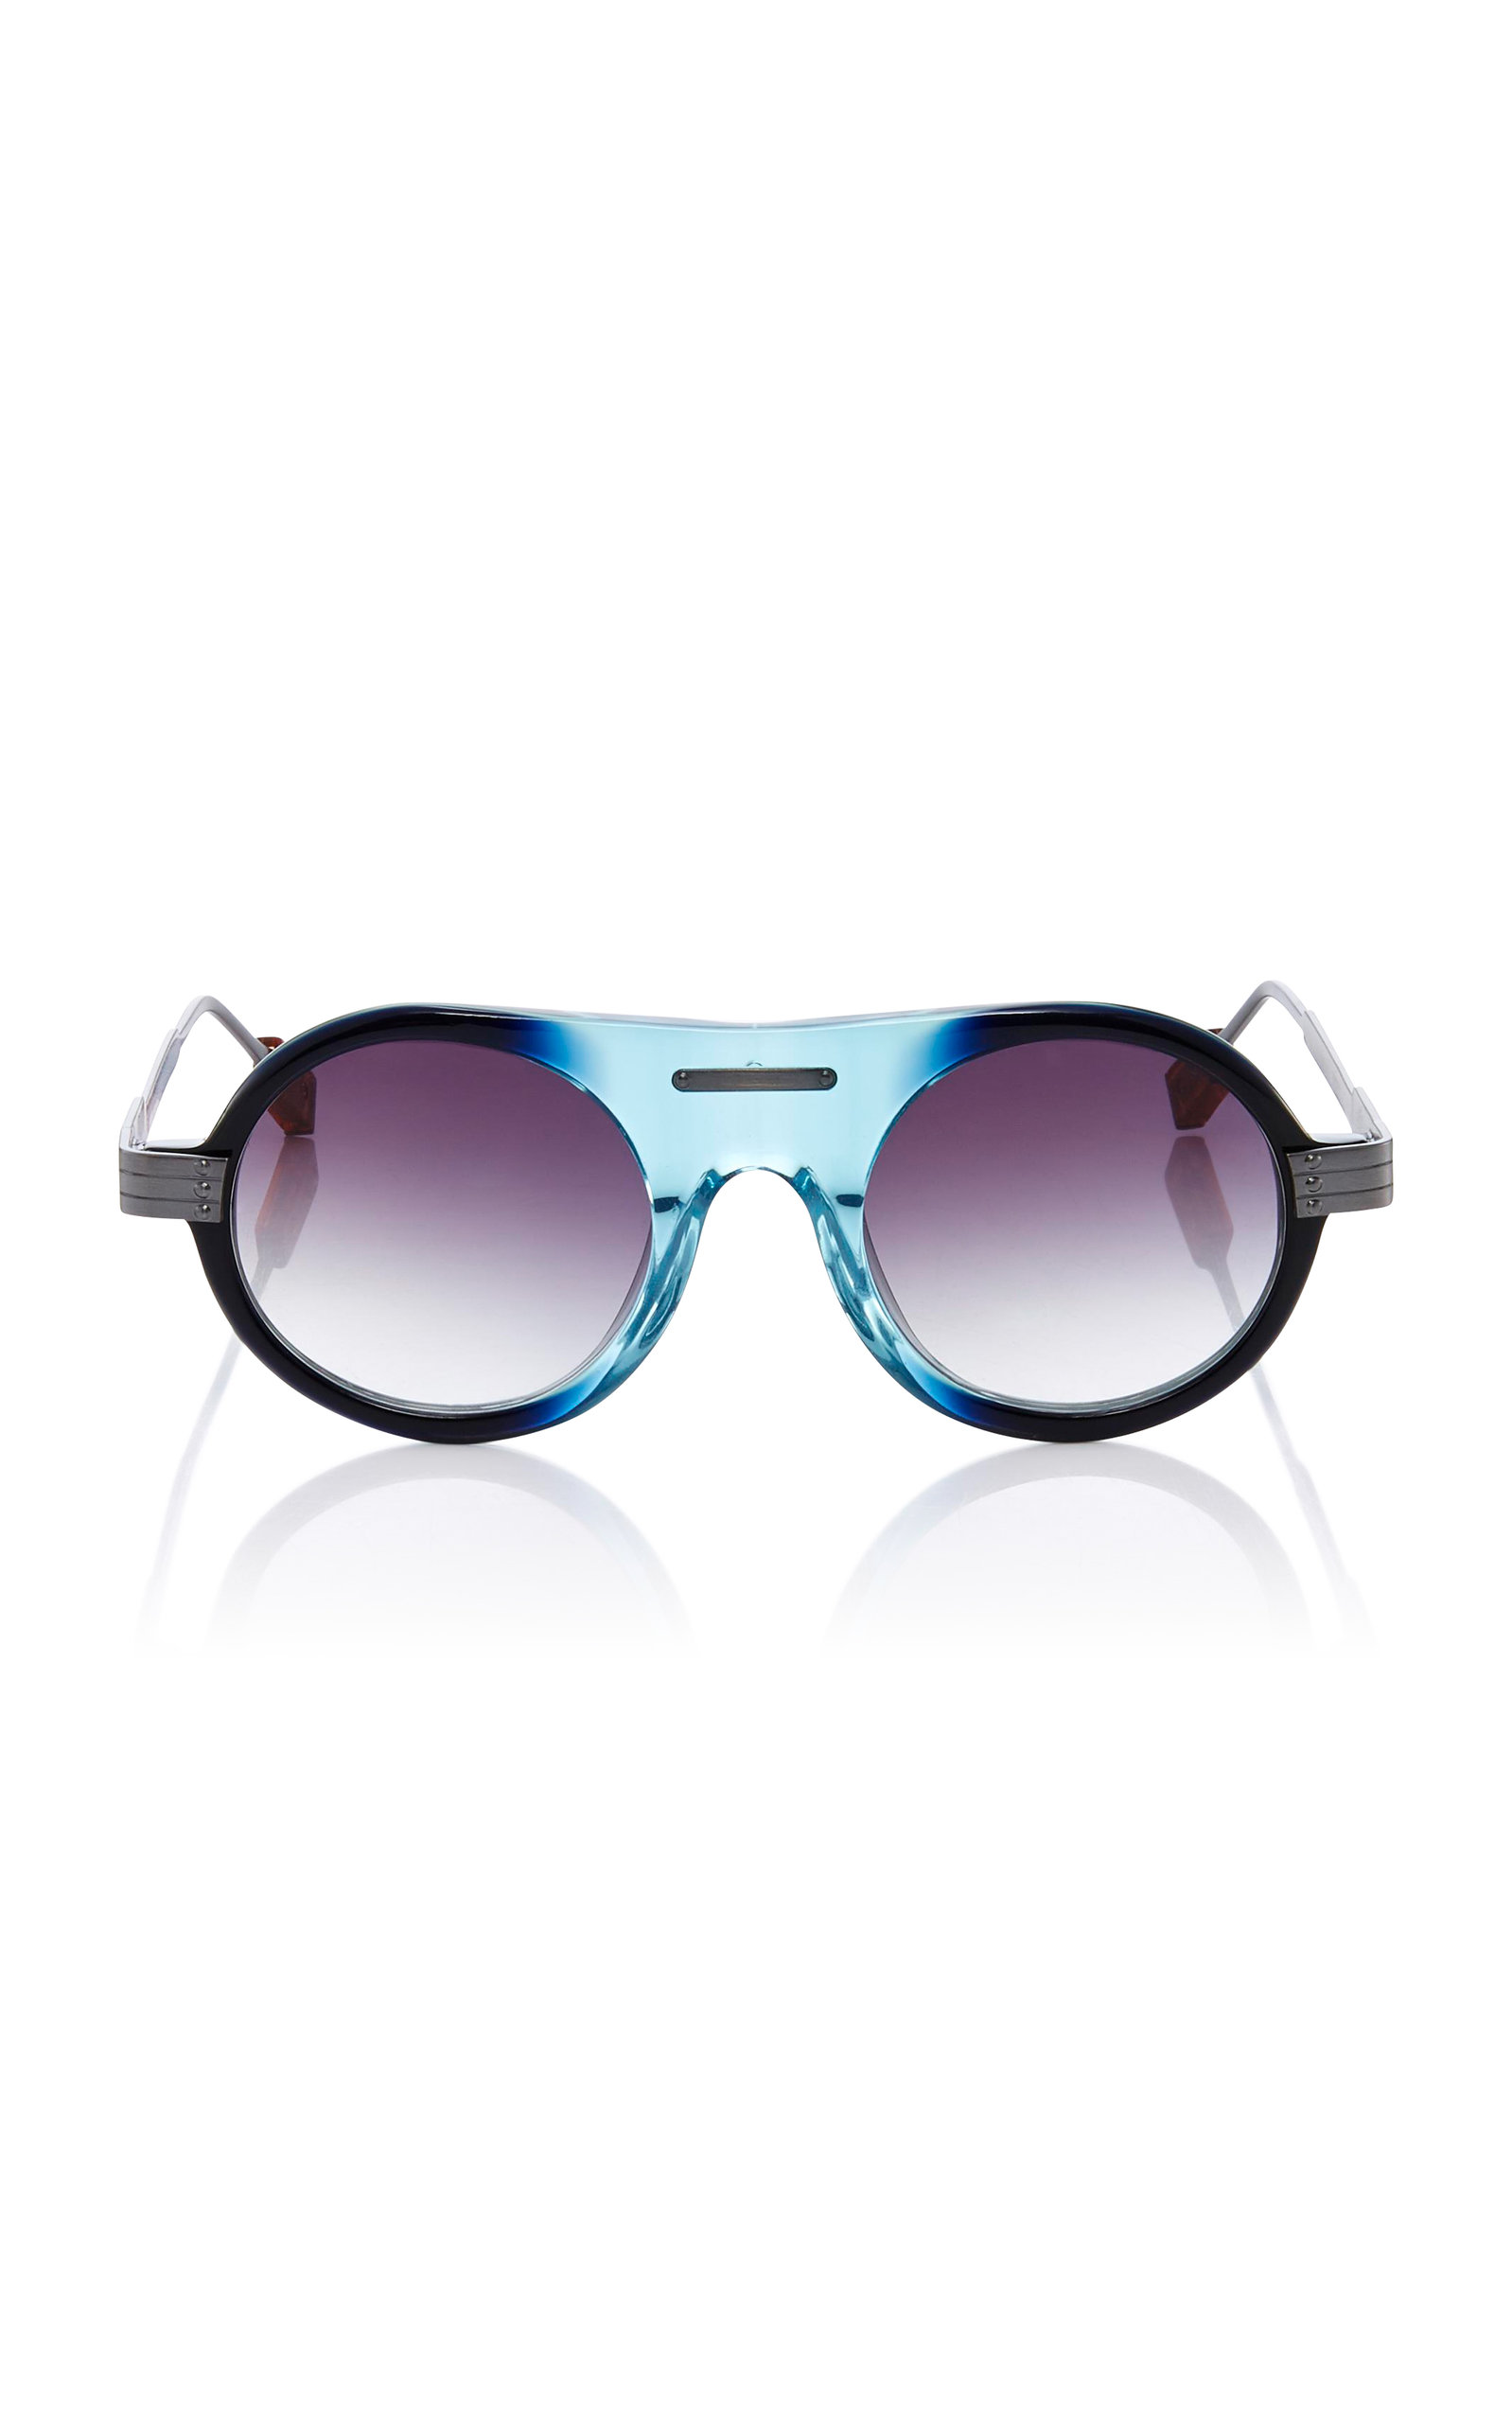 ROSIE ASSOULIN X MORGENTHAL FREDERICS HERBIE ROUND-FRAME SUNGLASSES